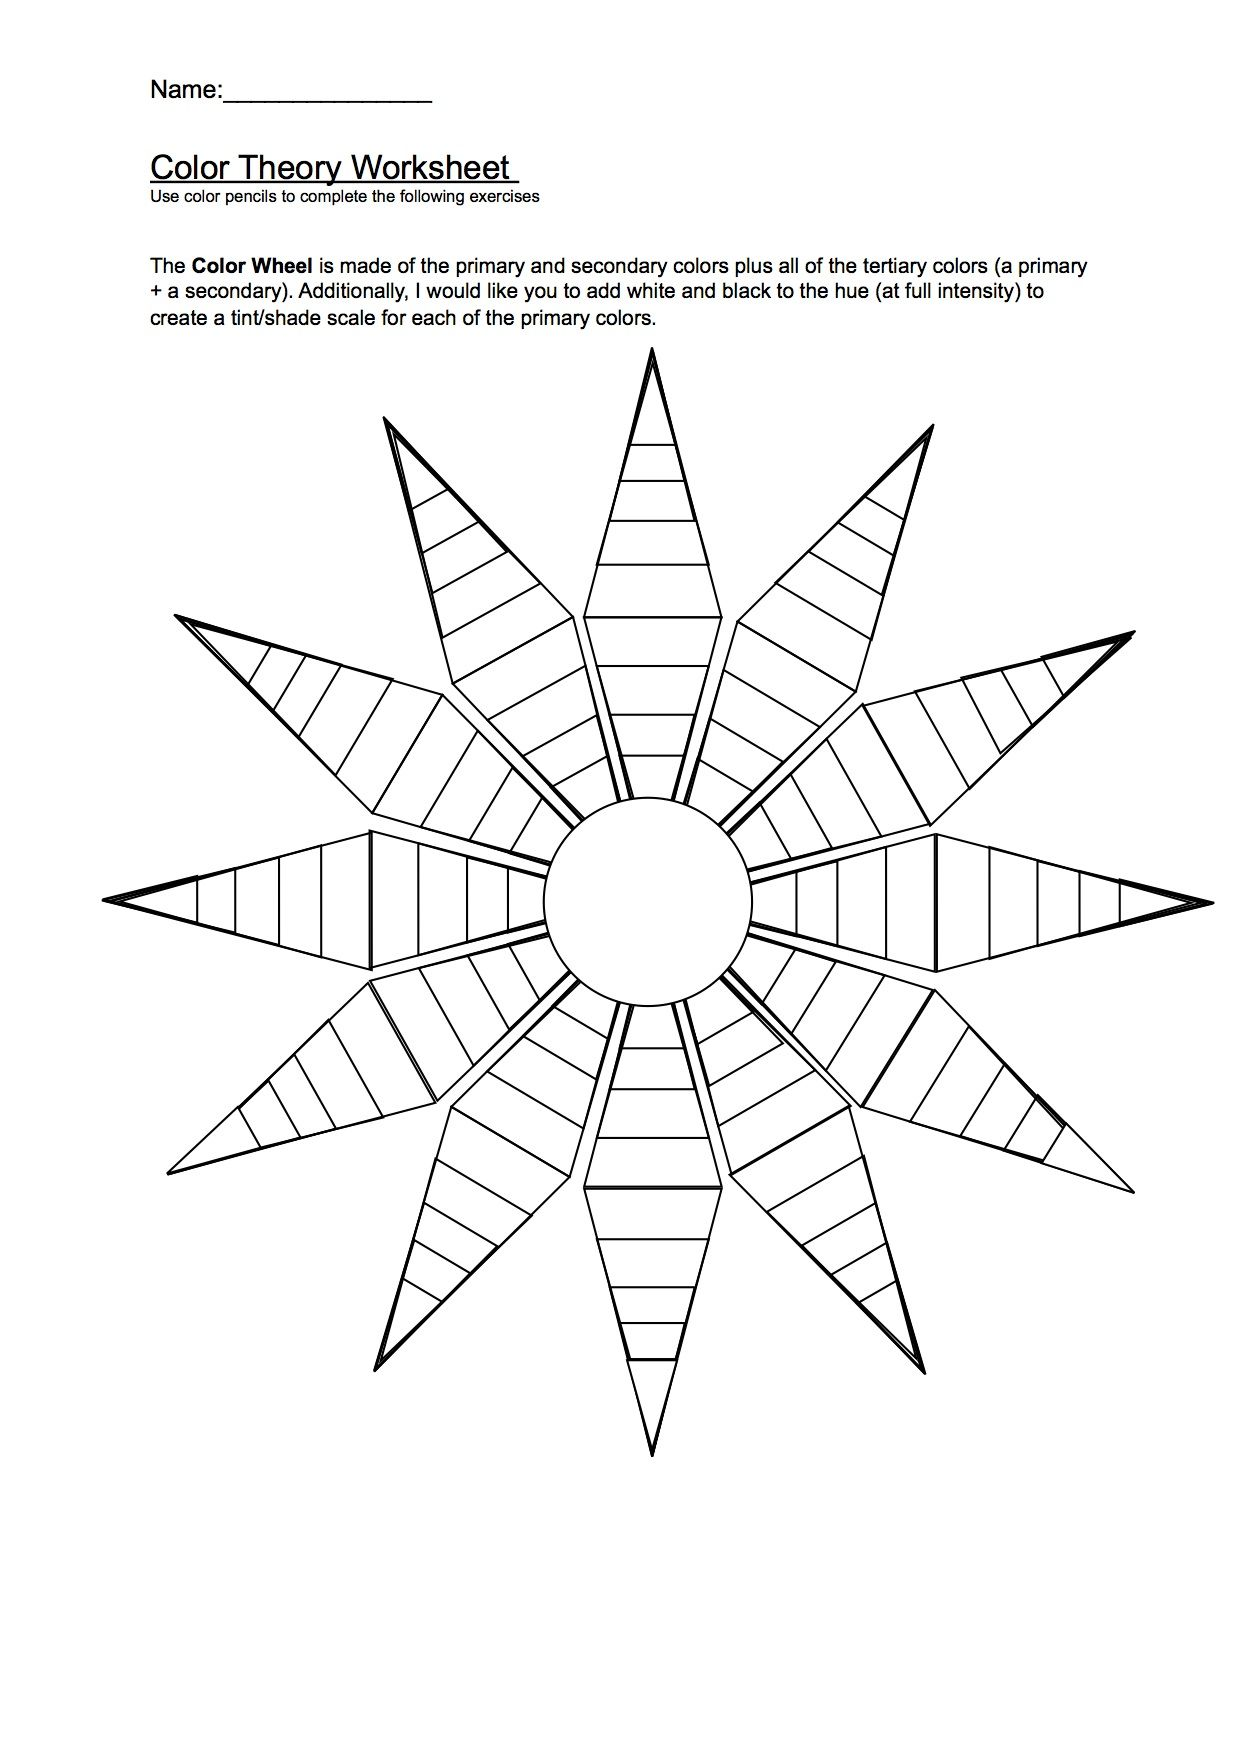 This is an image of Massif Printable Color Wheel Worksheet